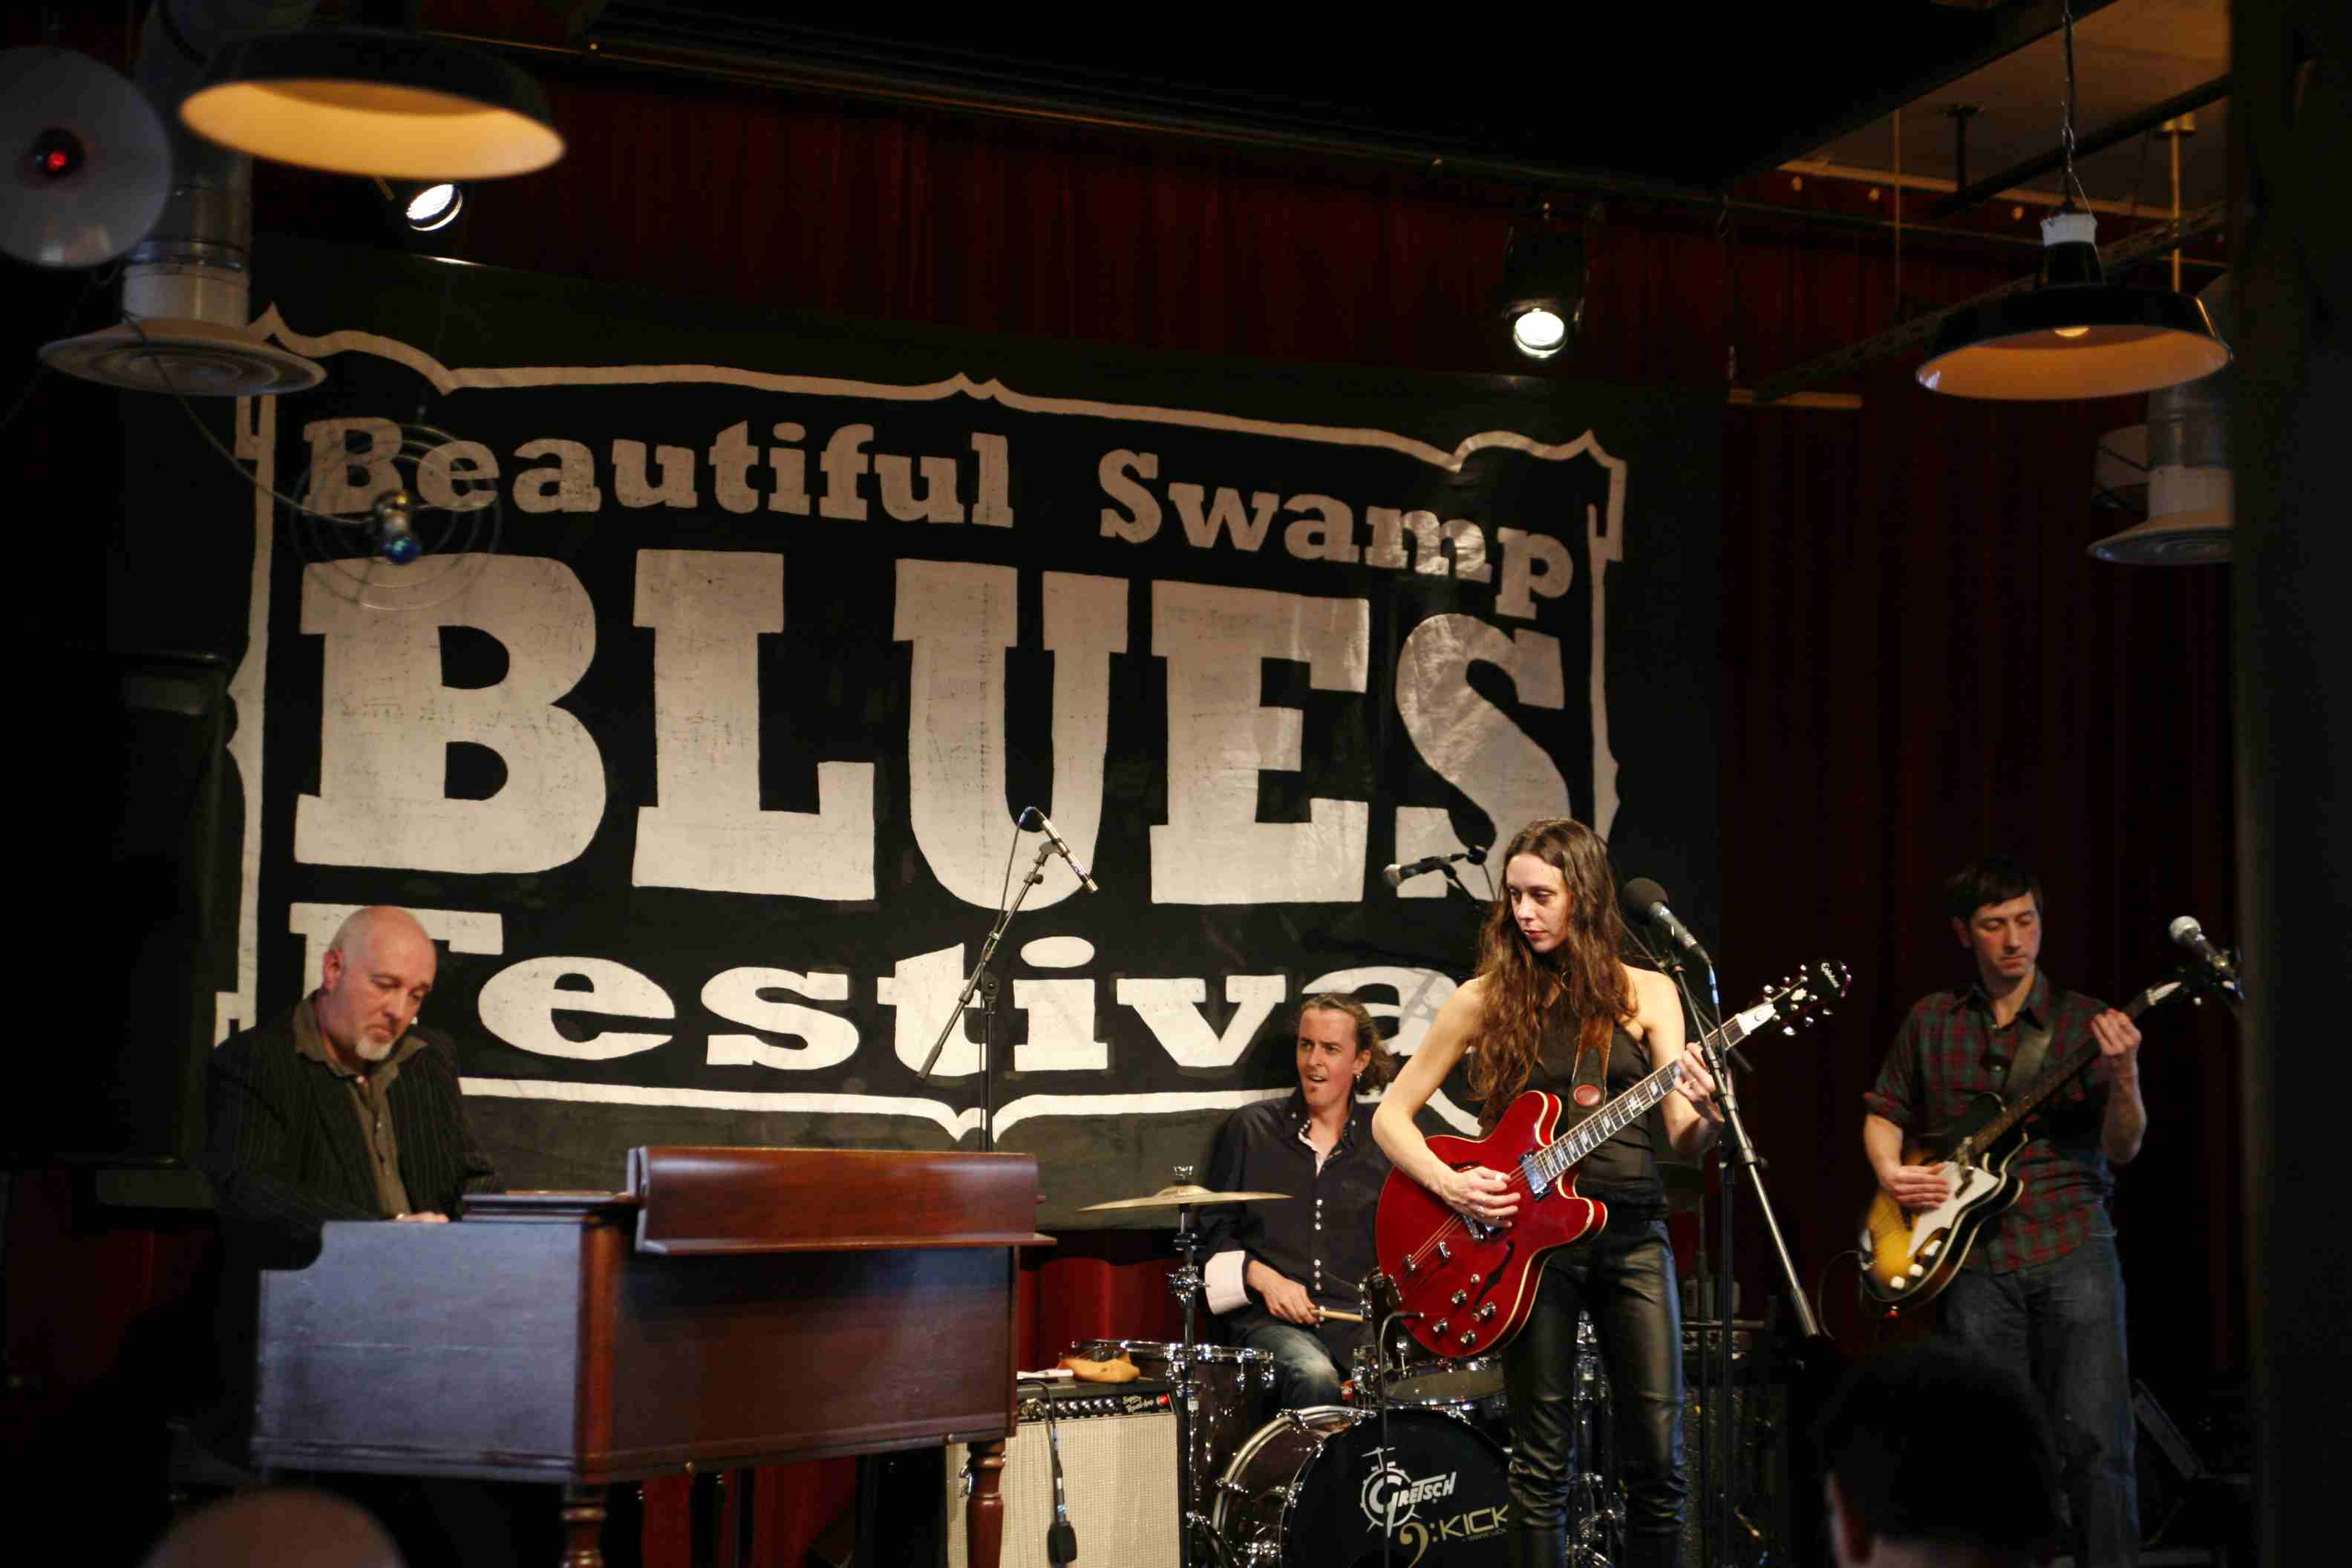 Beautiful Swamp Blues Festival 2010